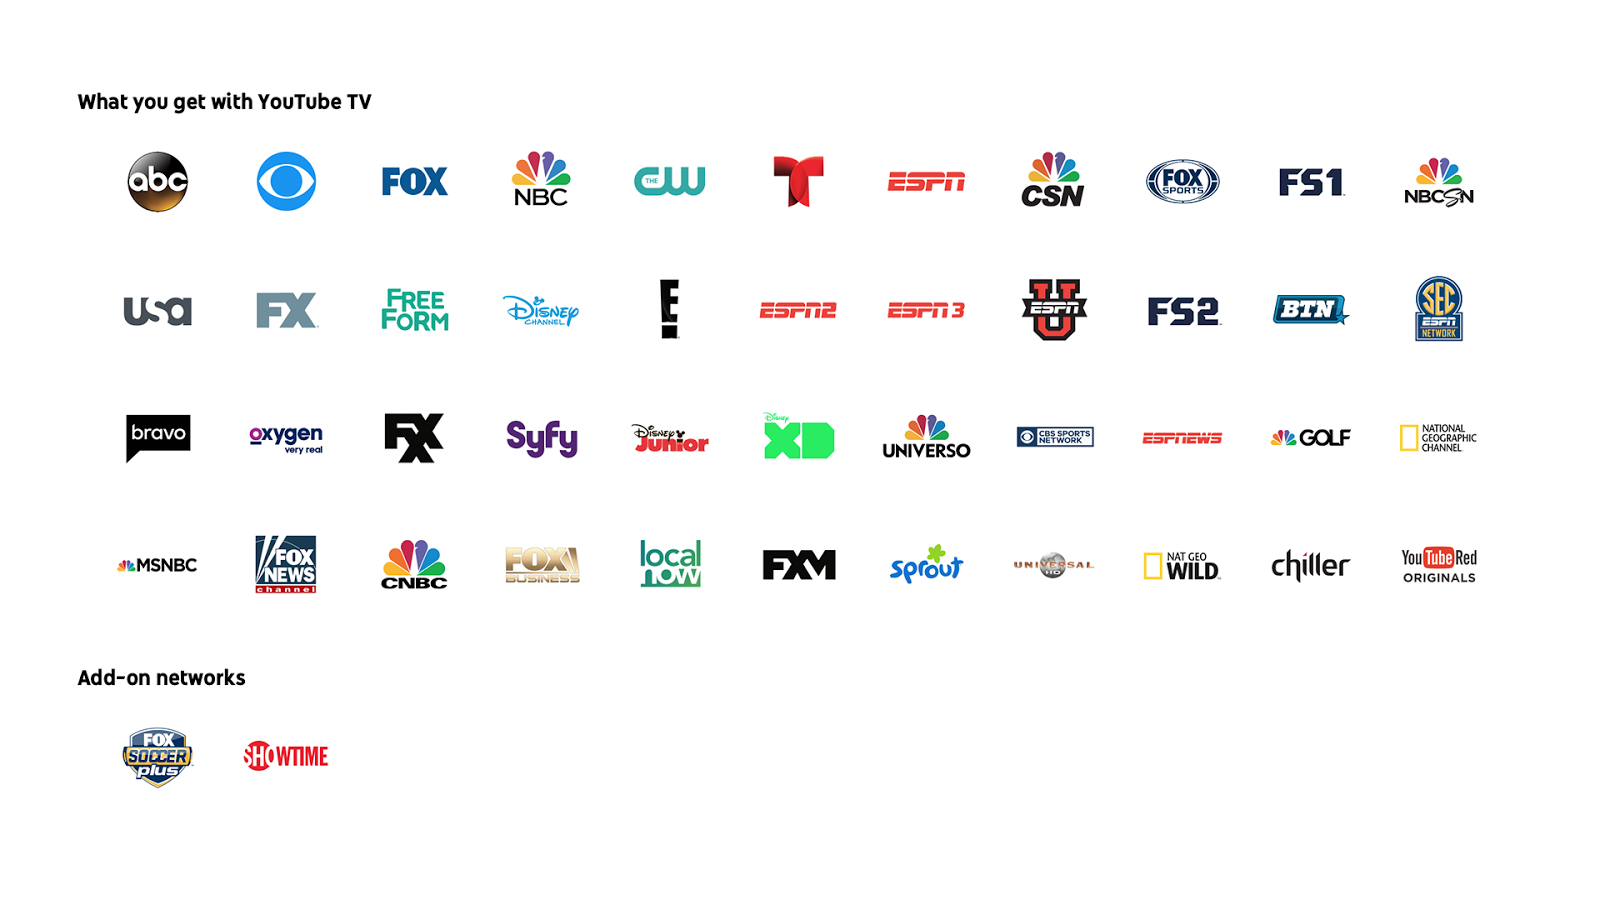 All of YouTube TV's initial channel offerings.